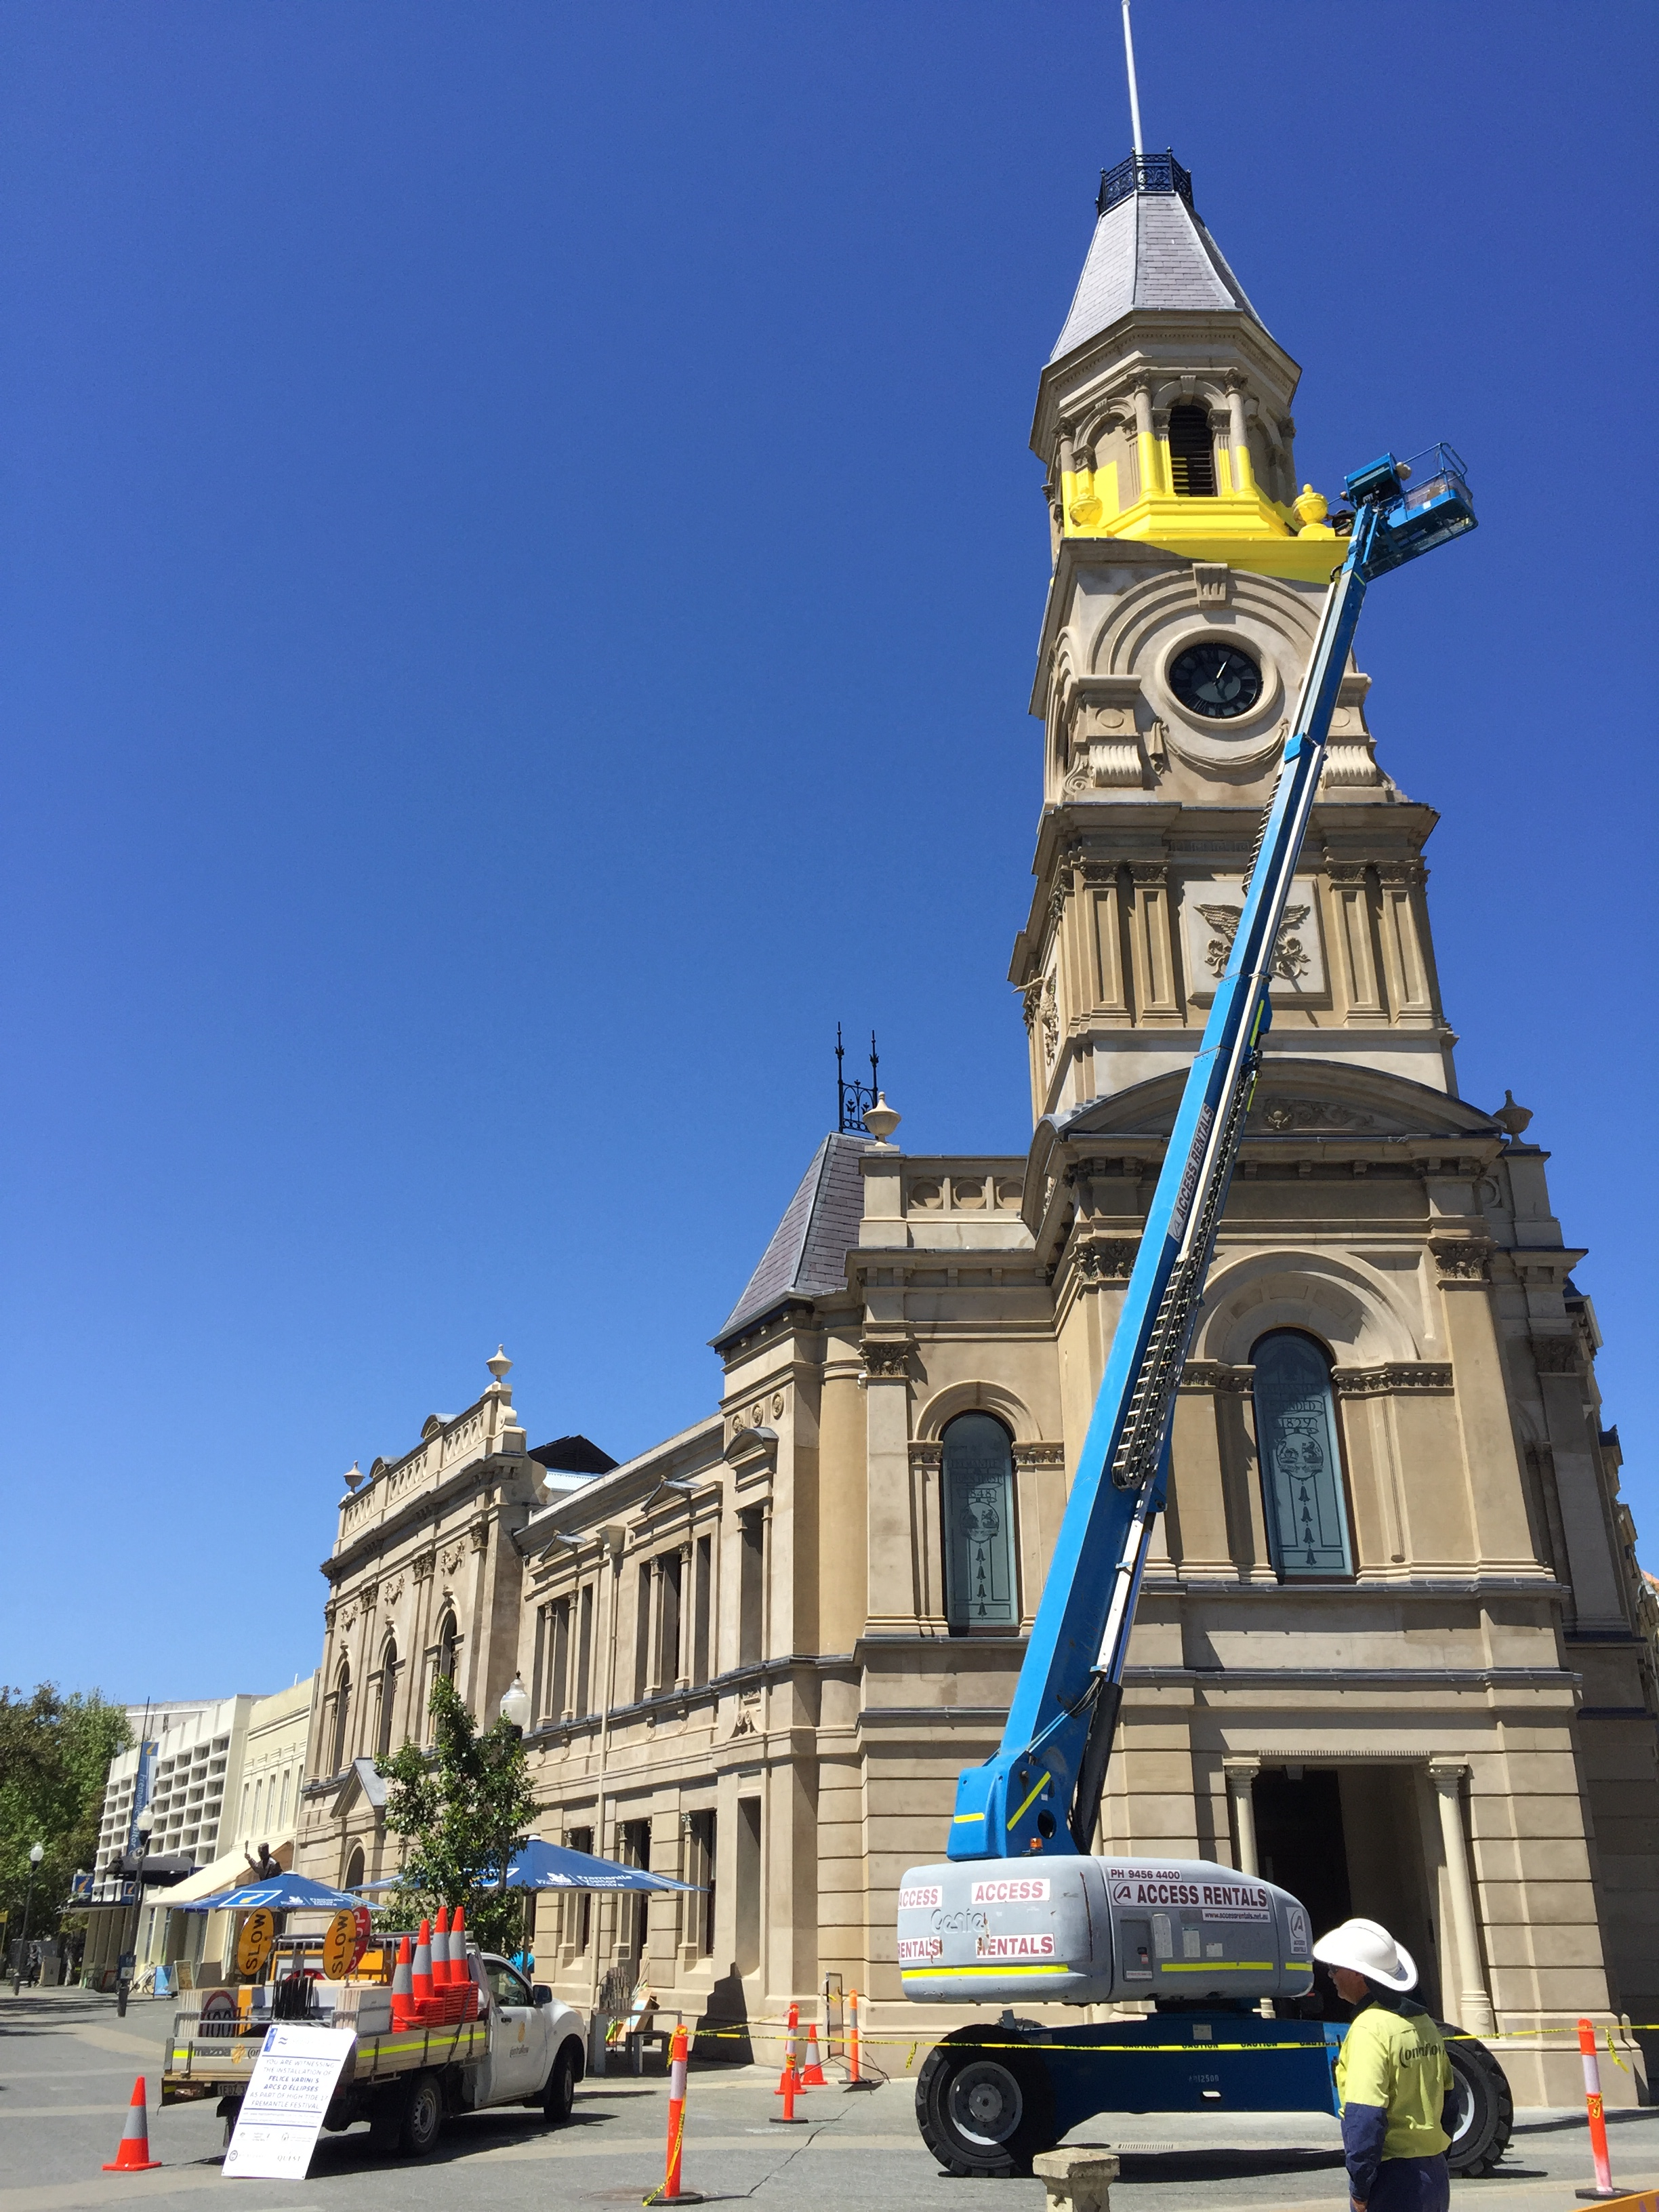 Progress shot of the High Tide artwork installation. Yellow paint is being applied to the Fremantle Town Hall via a blue crane.